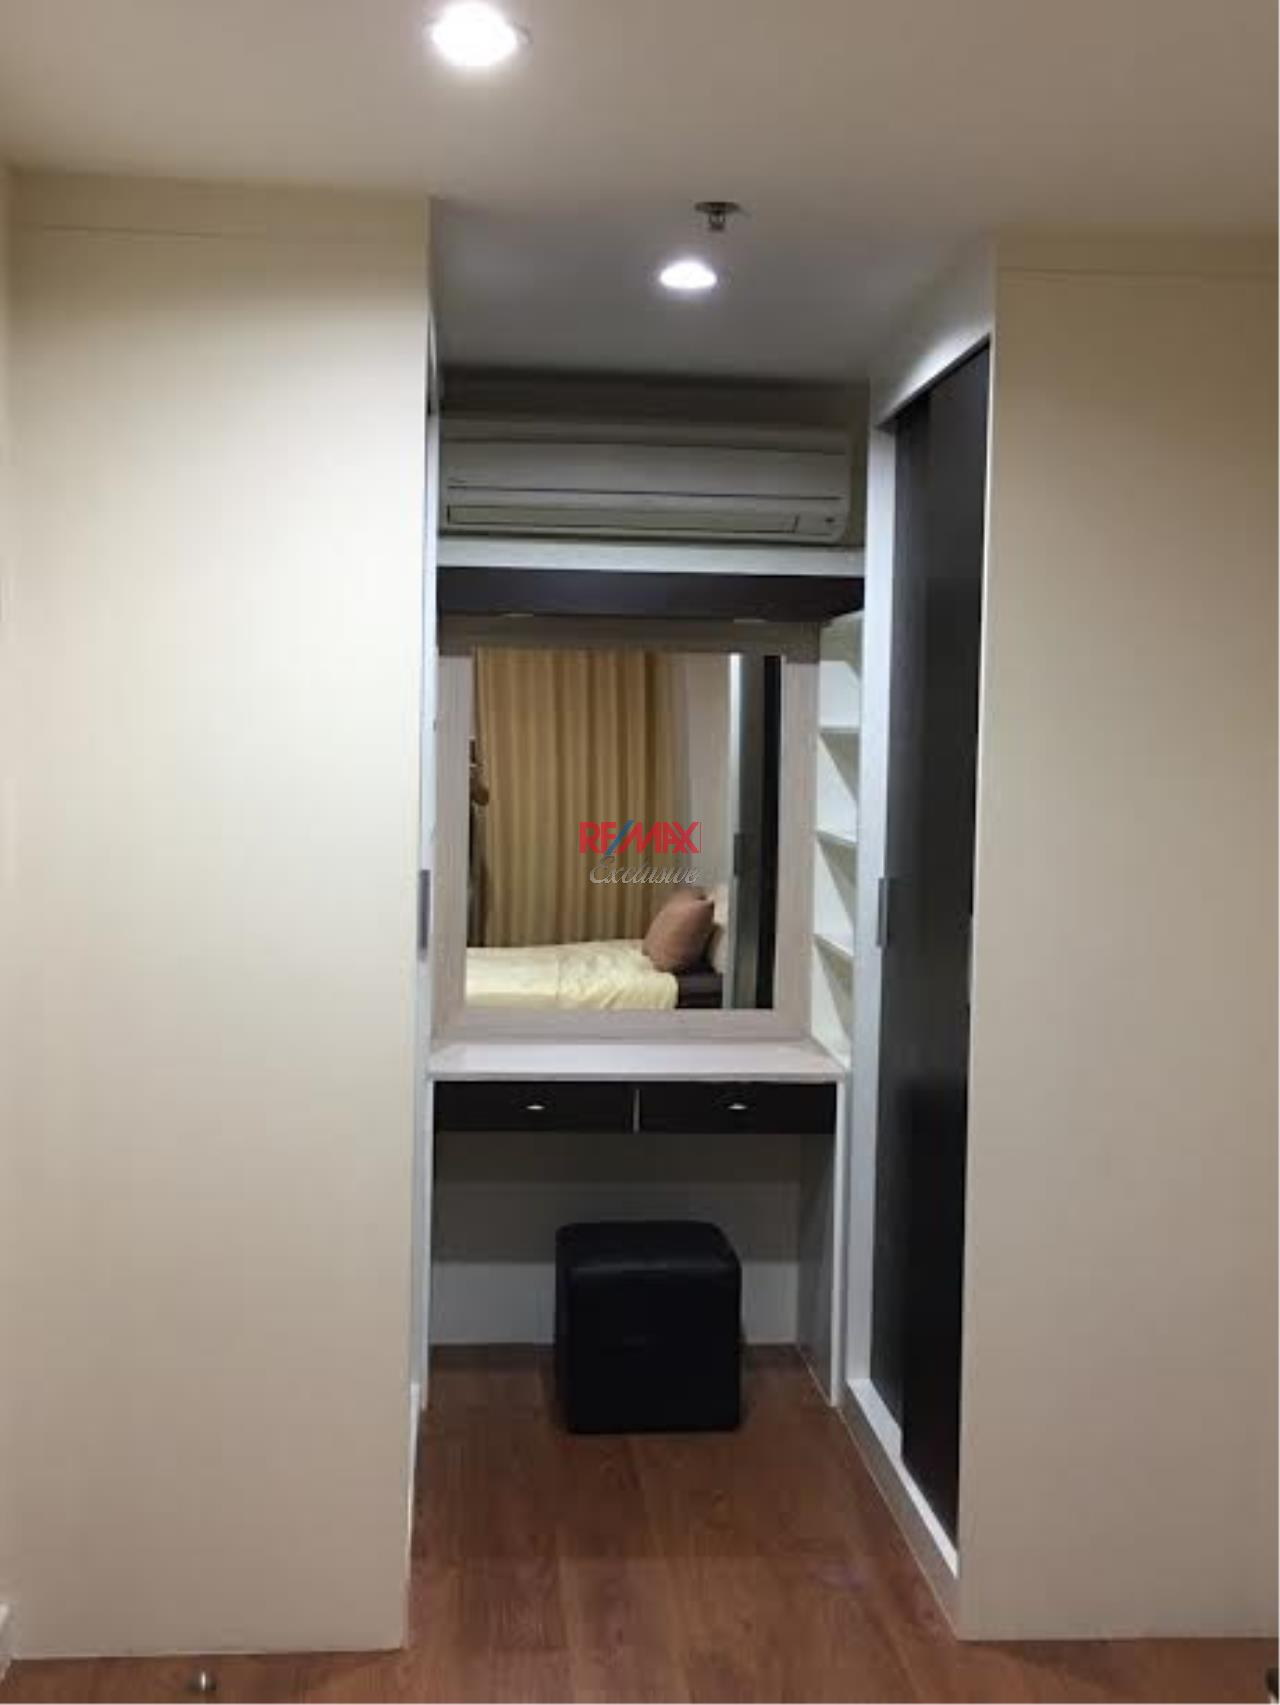 RE/MAX Exclusive Agency's 1 Bedroom at Condo One X Sukhumvit 26 For Rent 30,000 THB 5